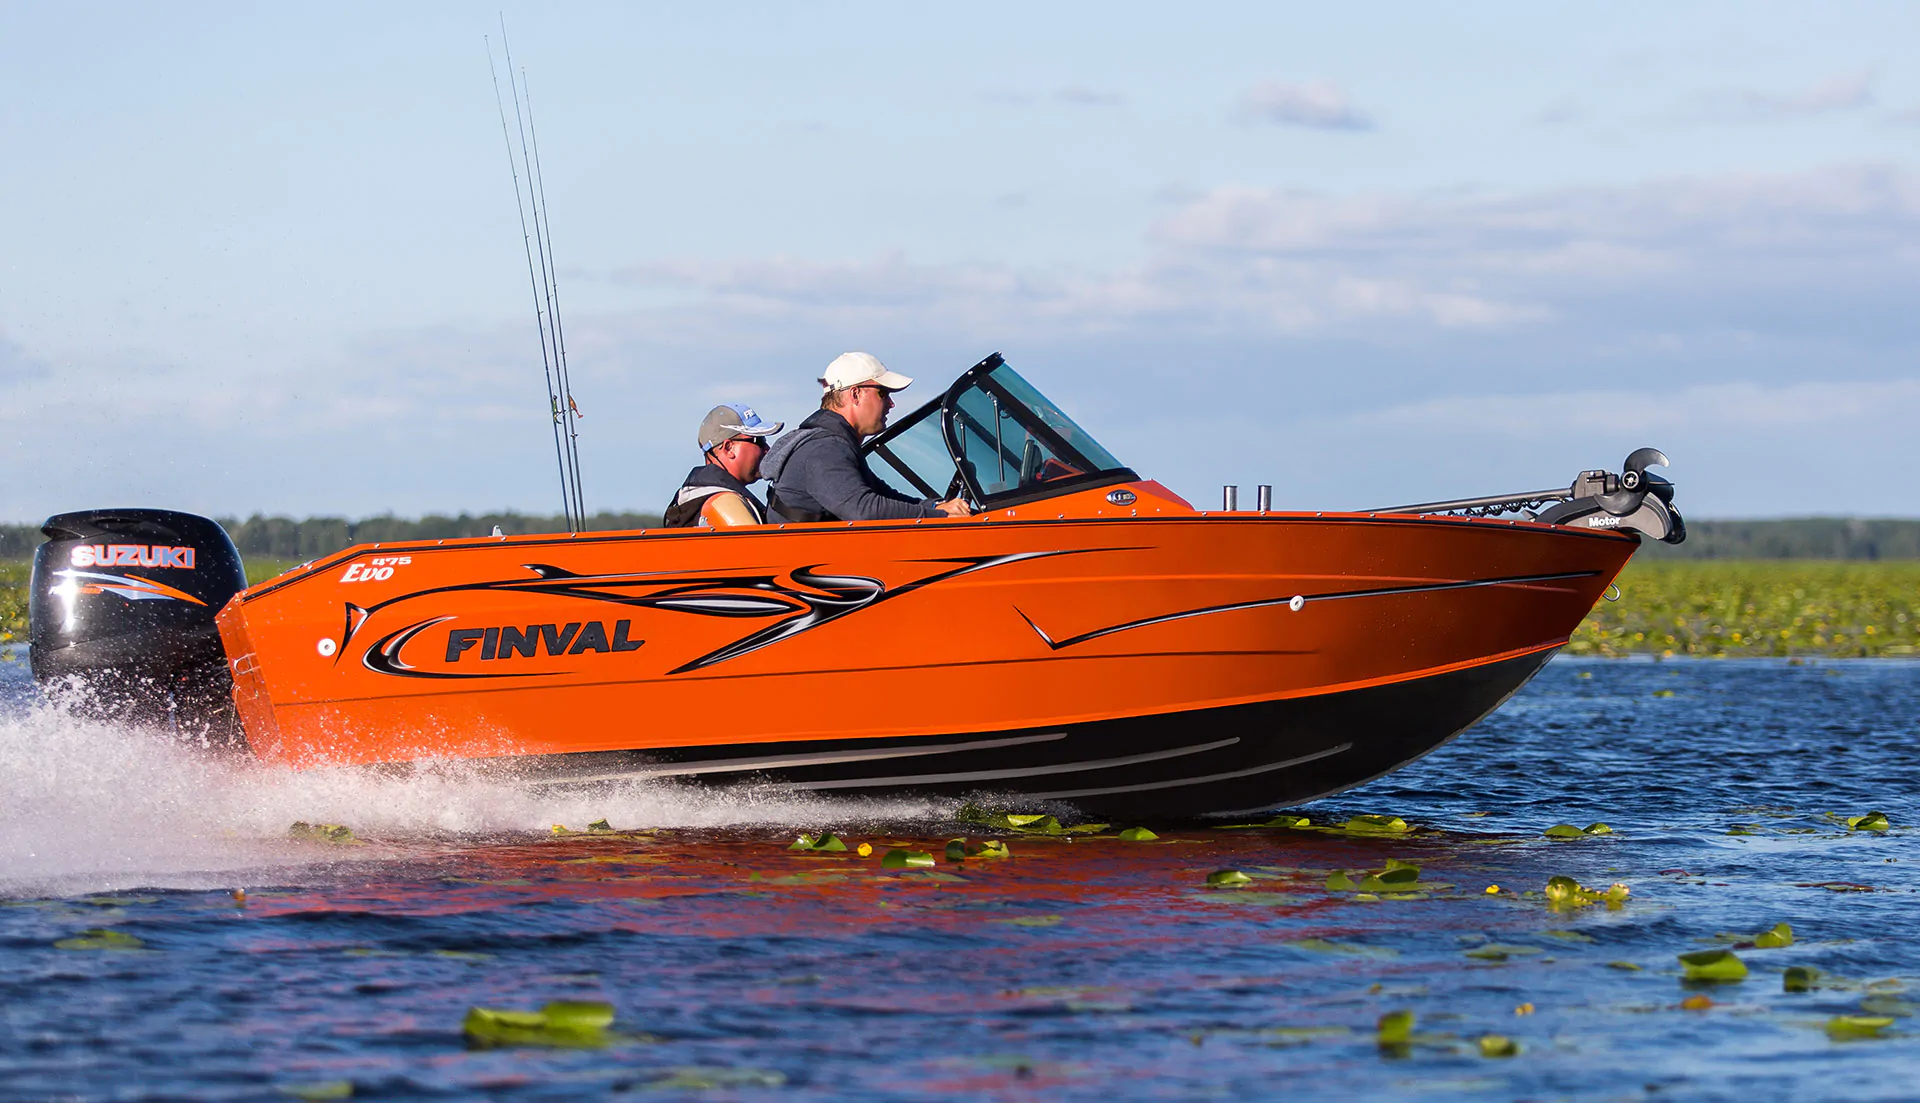 Finval Evo 475: a great choice for all fishing enthusiasts